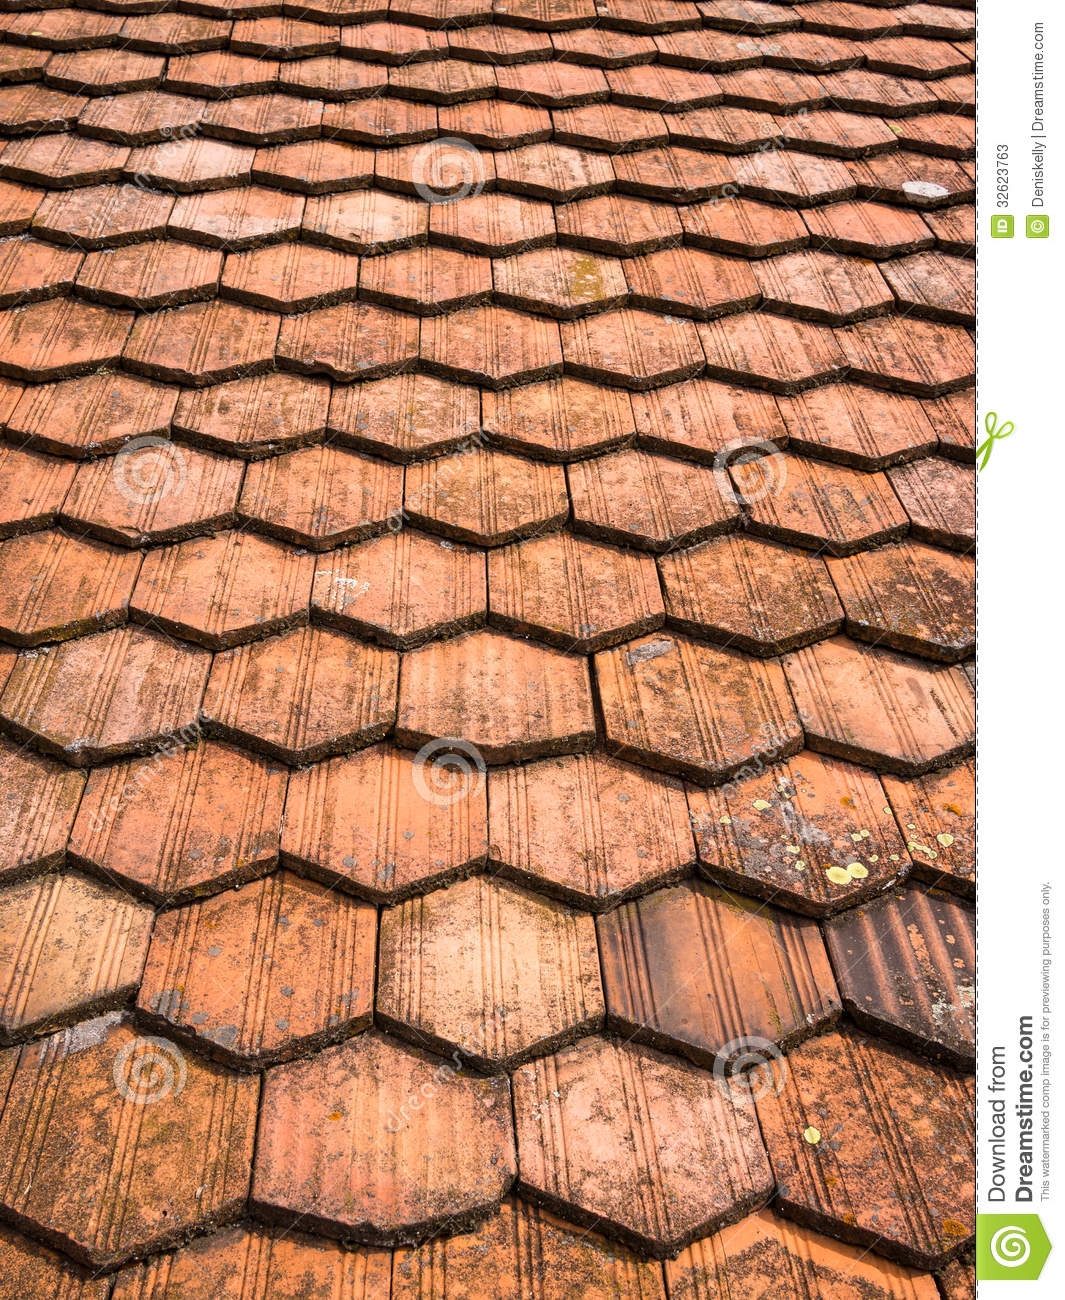 Roof tiles abstract pattern stock photos image 32623763 for Roof tile patterns